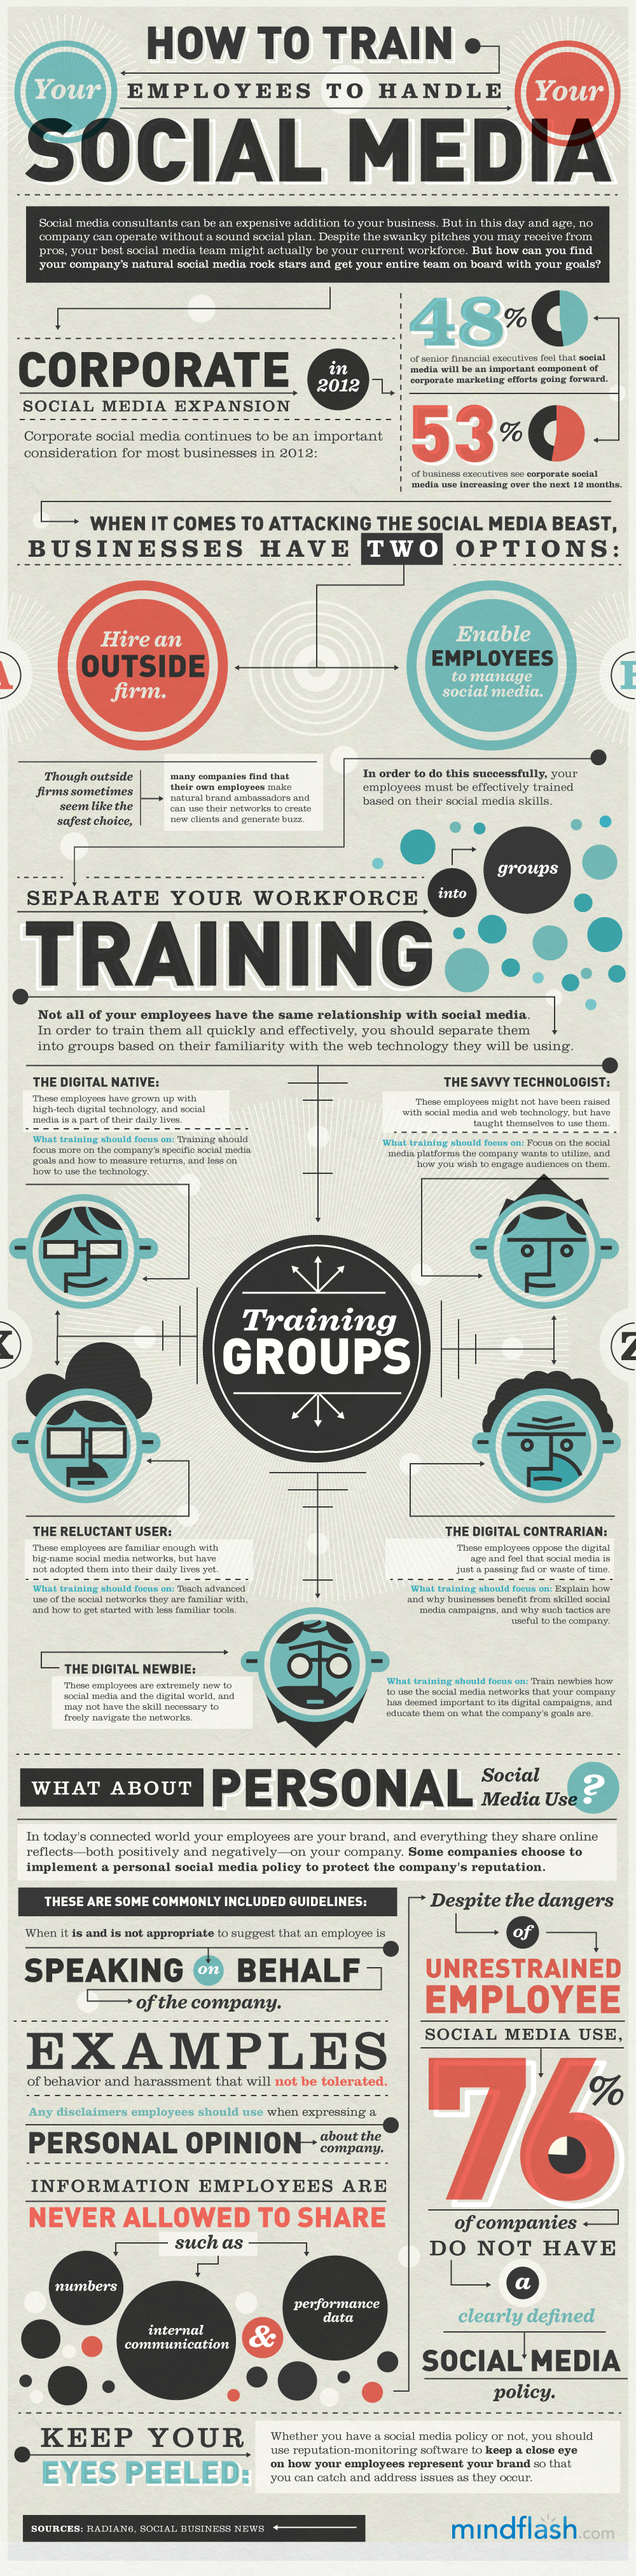 How to Train Your Employees to Handle Social Media